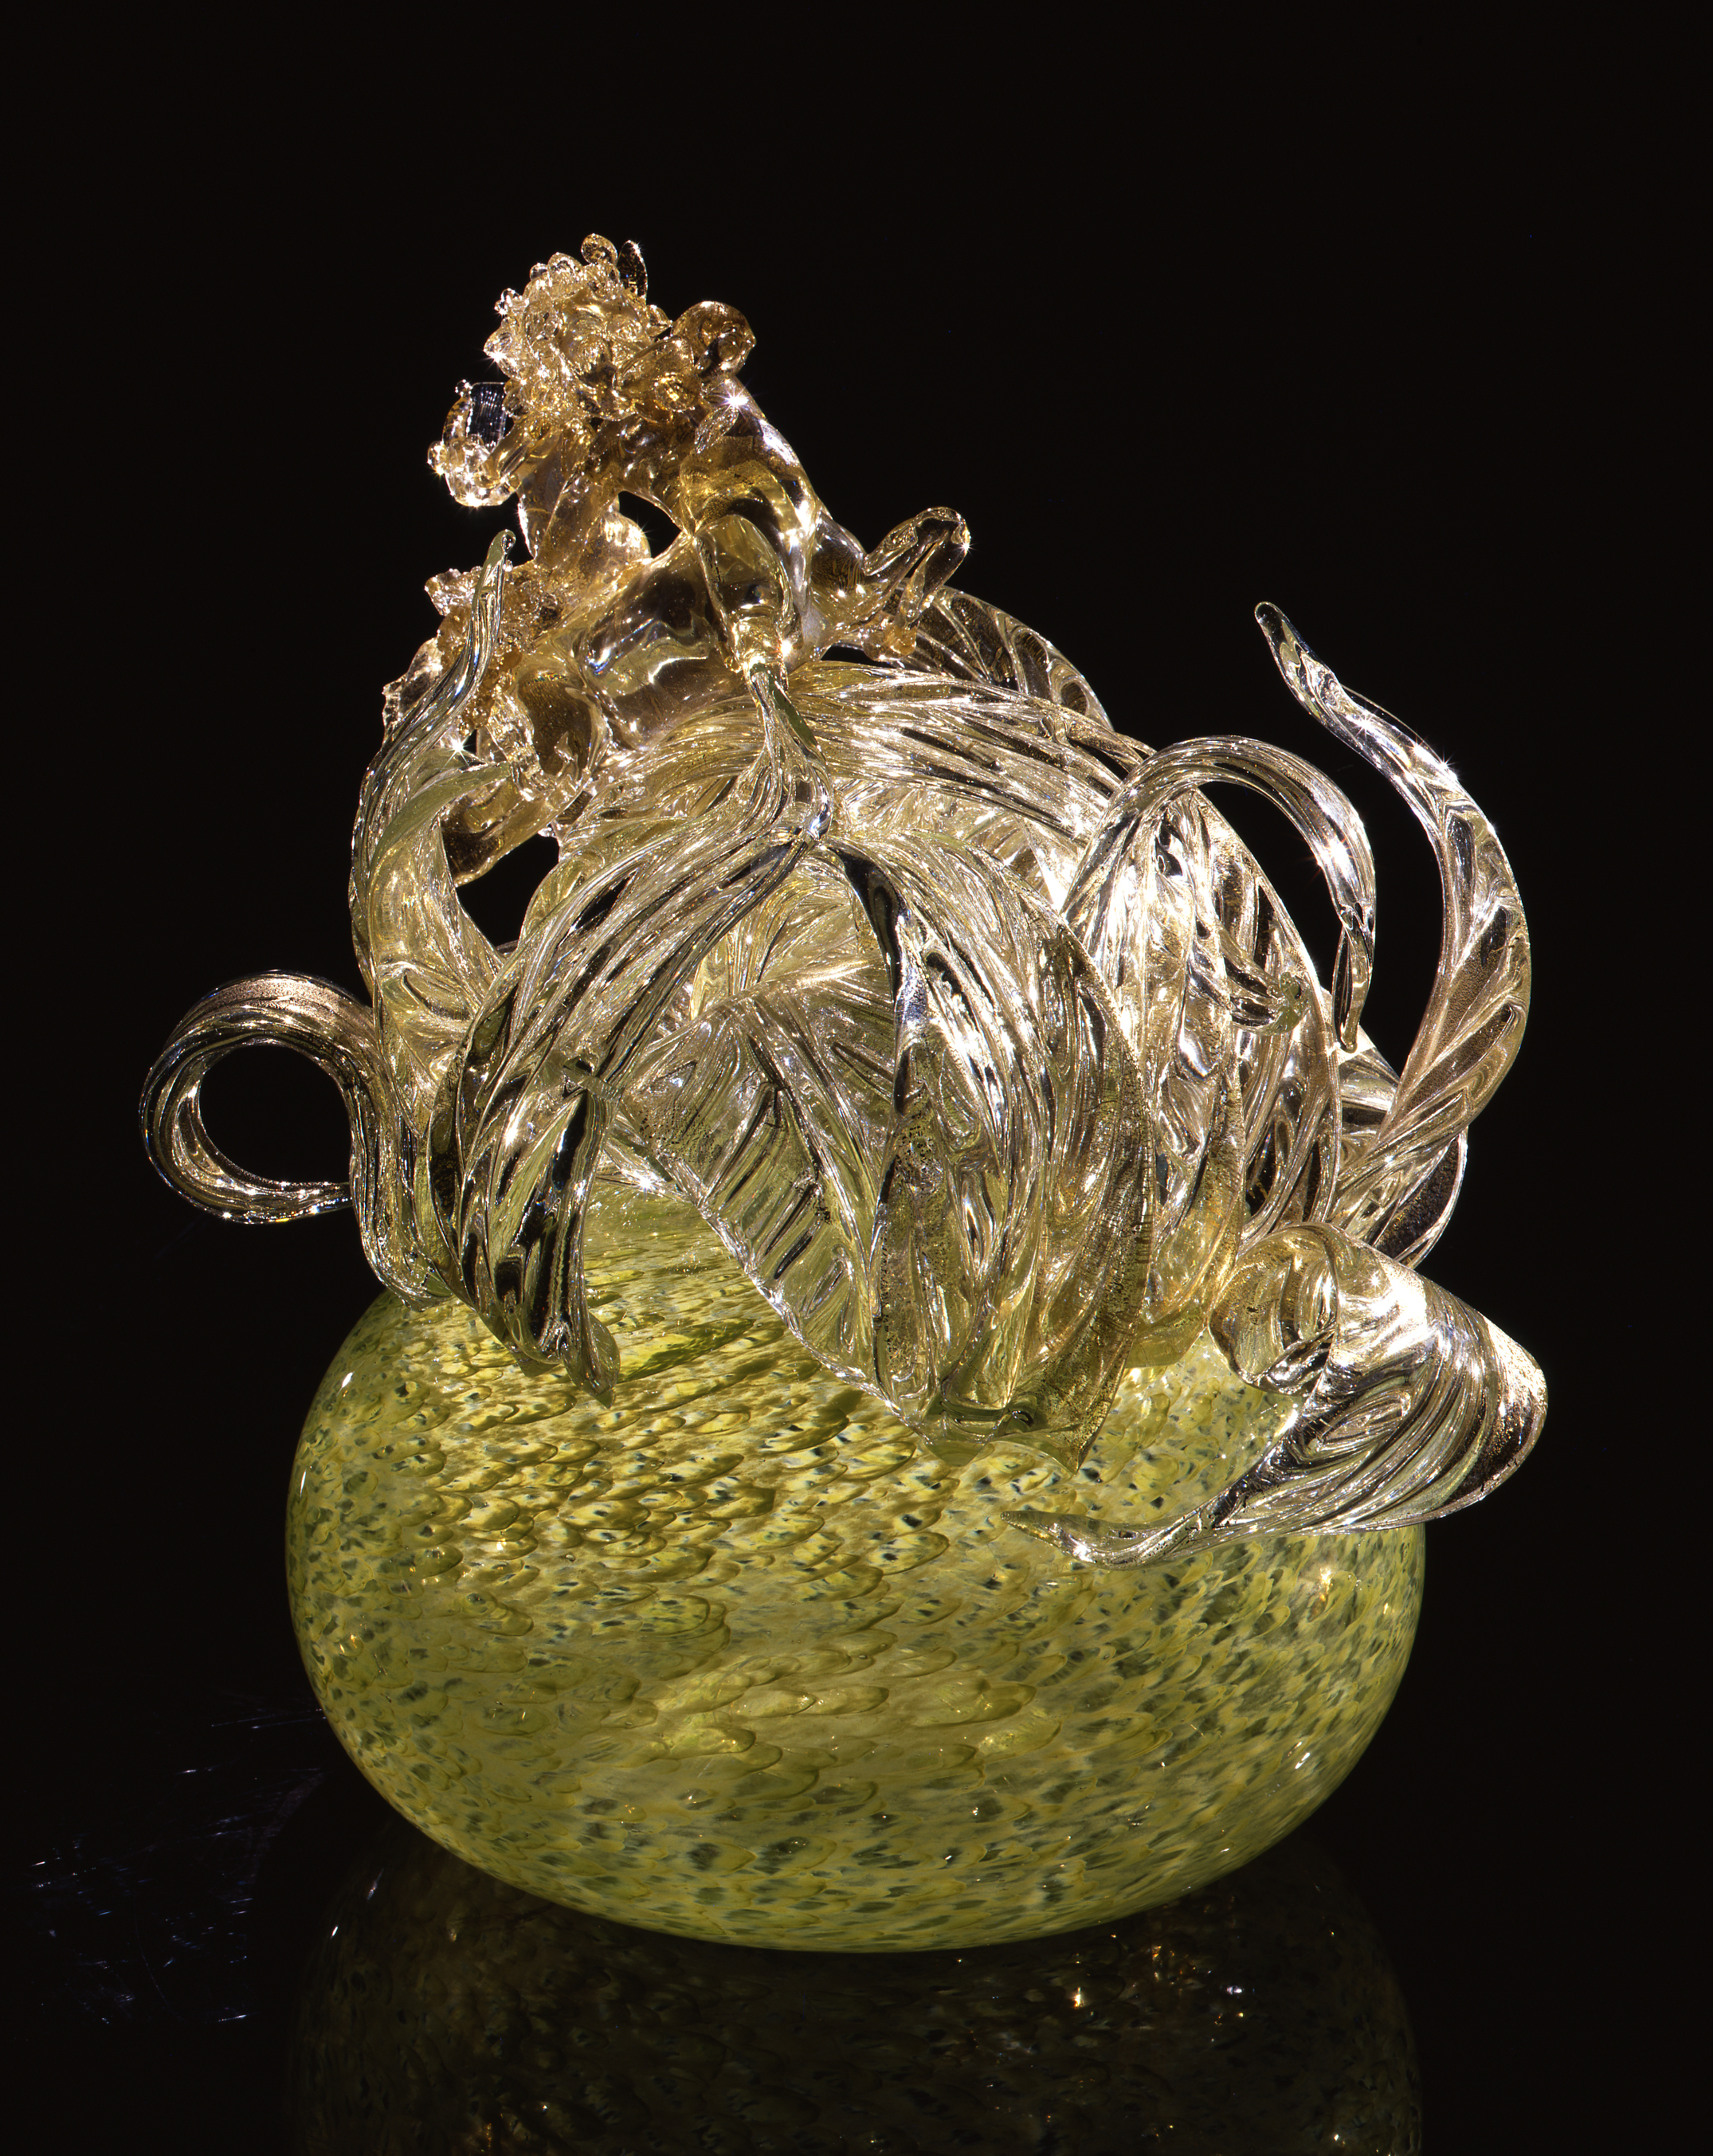 Dale Chihuly,  Fountain Green Putti Venetian with Gilt Leaves and Centaur  (1993, glass, 18 x 16 x 17 inches)